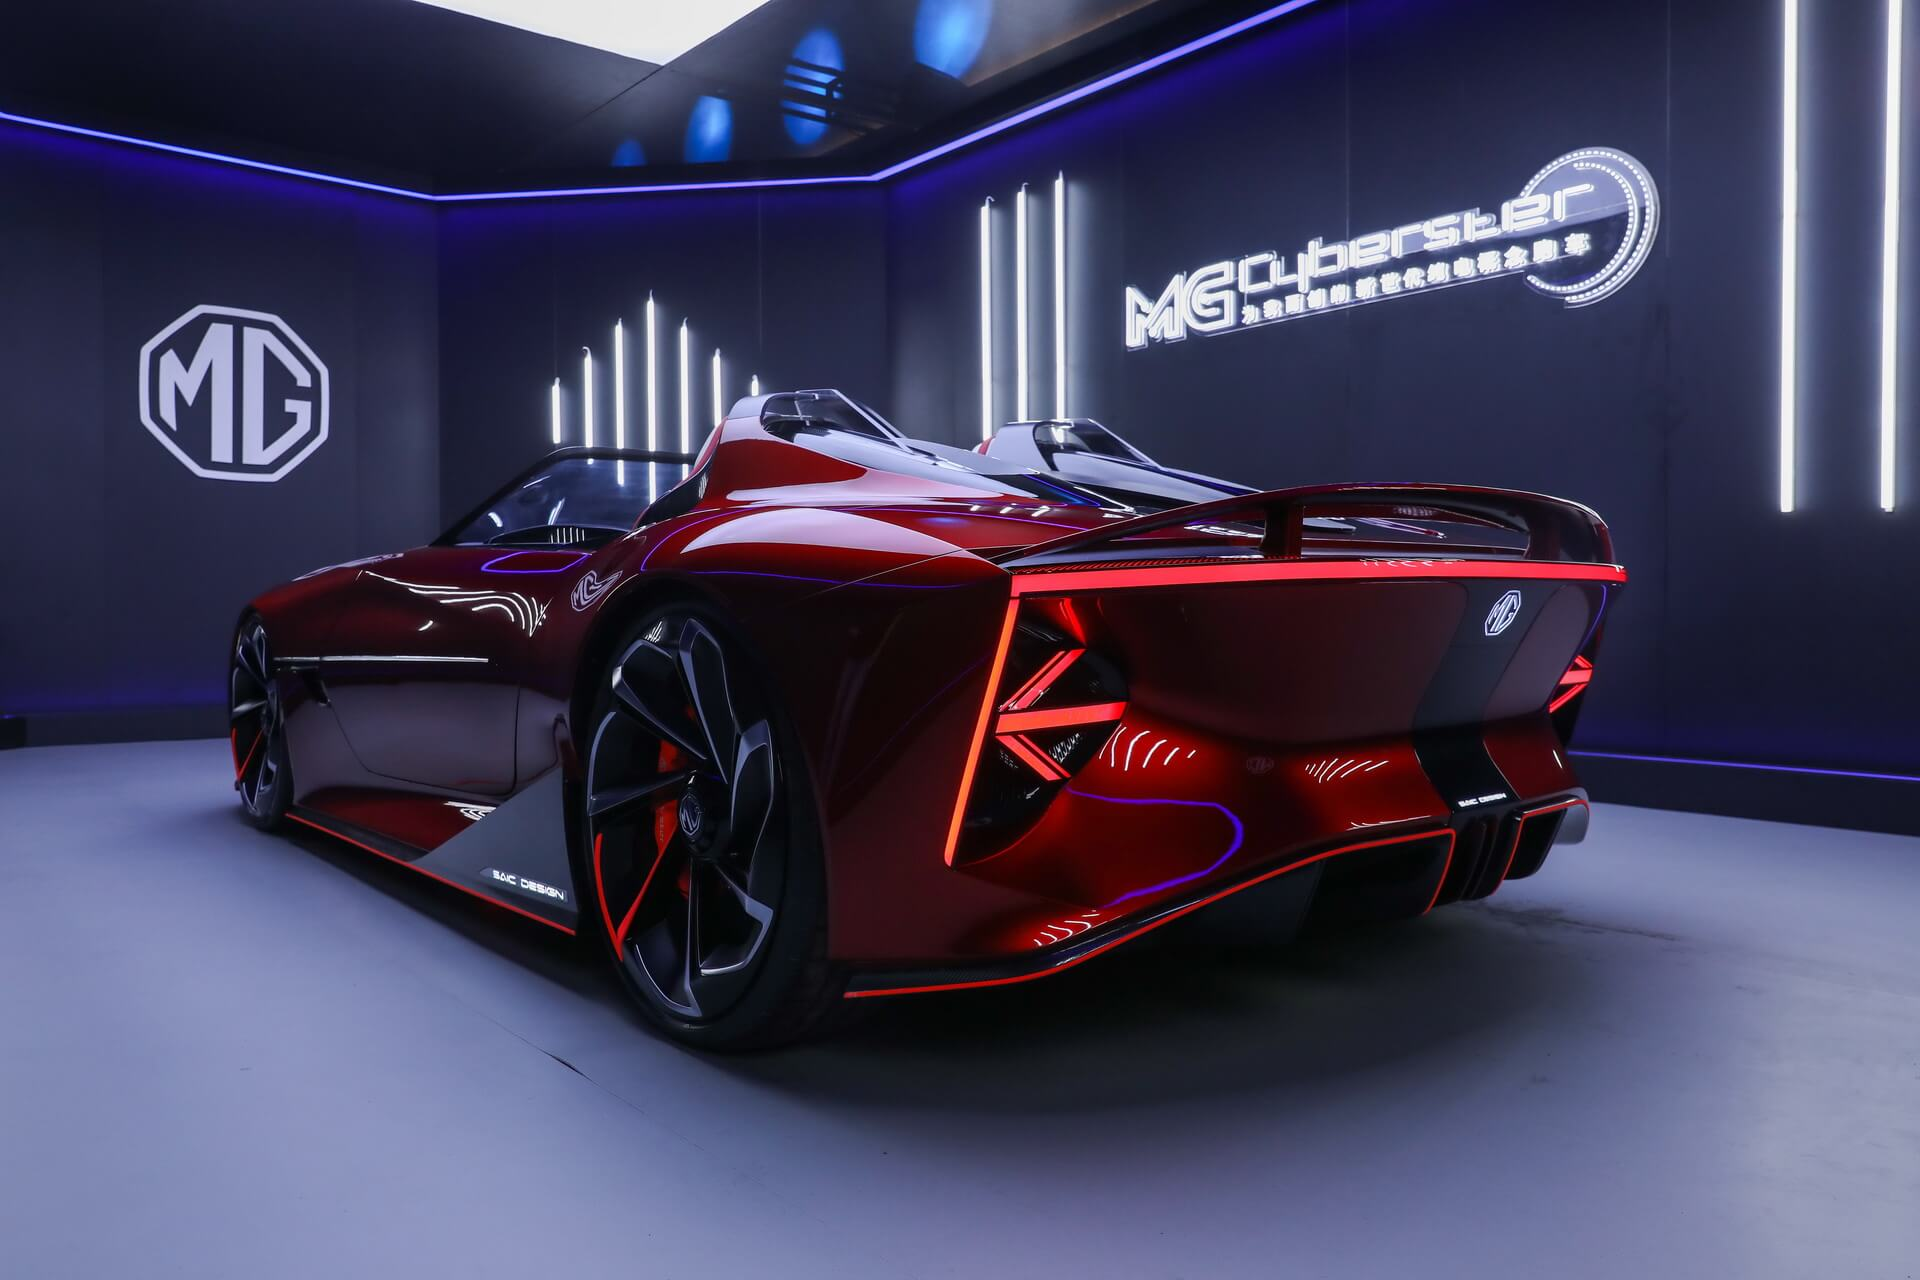 MG Cyberster Roadster Concept